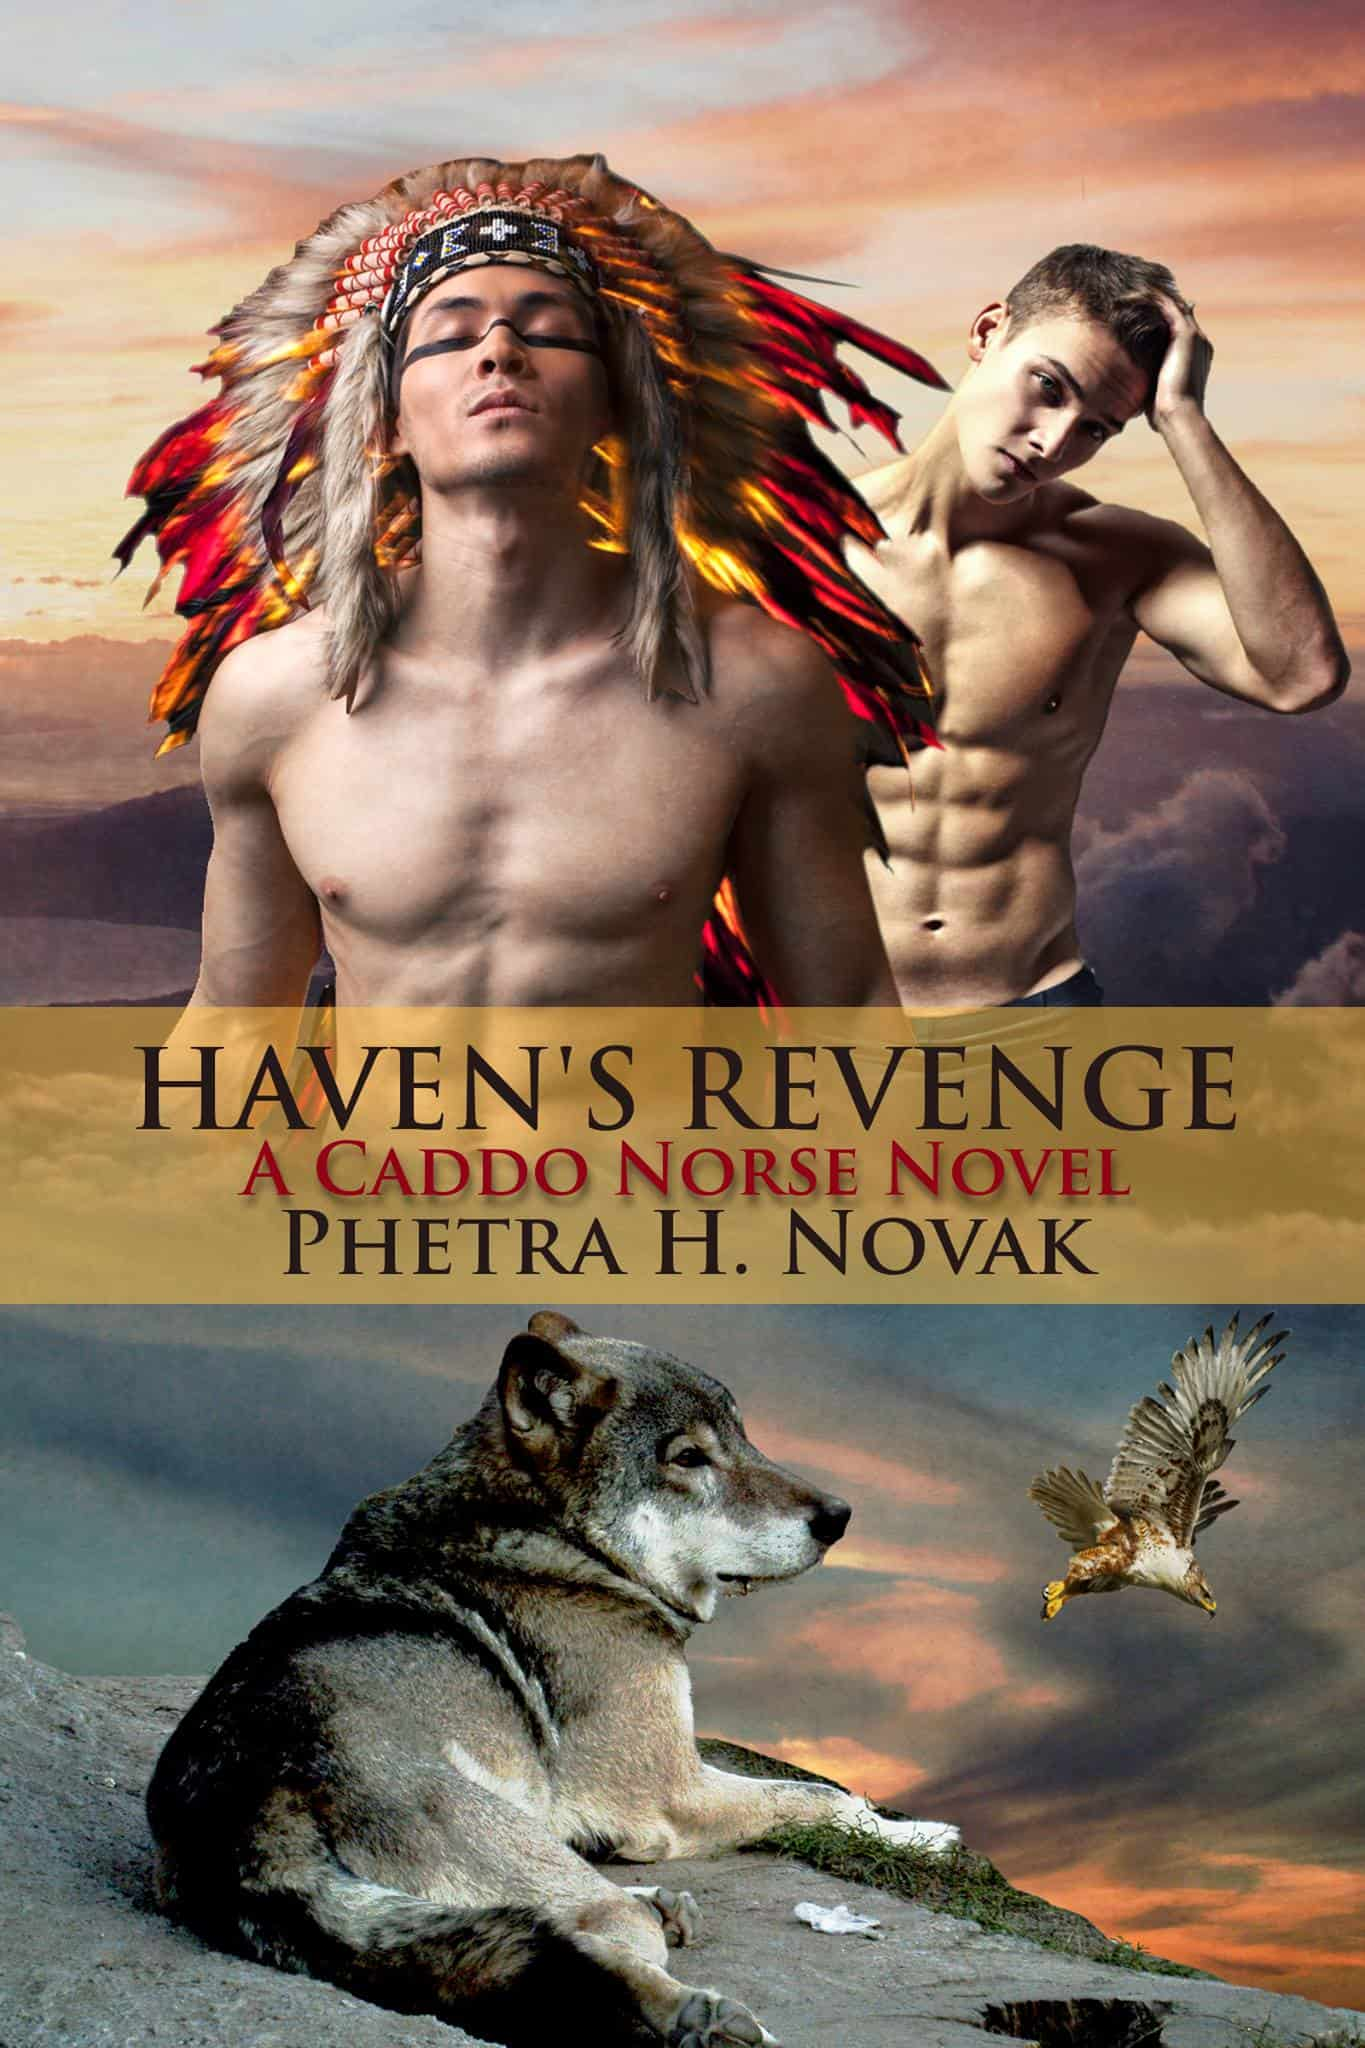 Blog Tour: Haven's Revenge and author spotlight with Phetra H. Novak